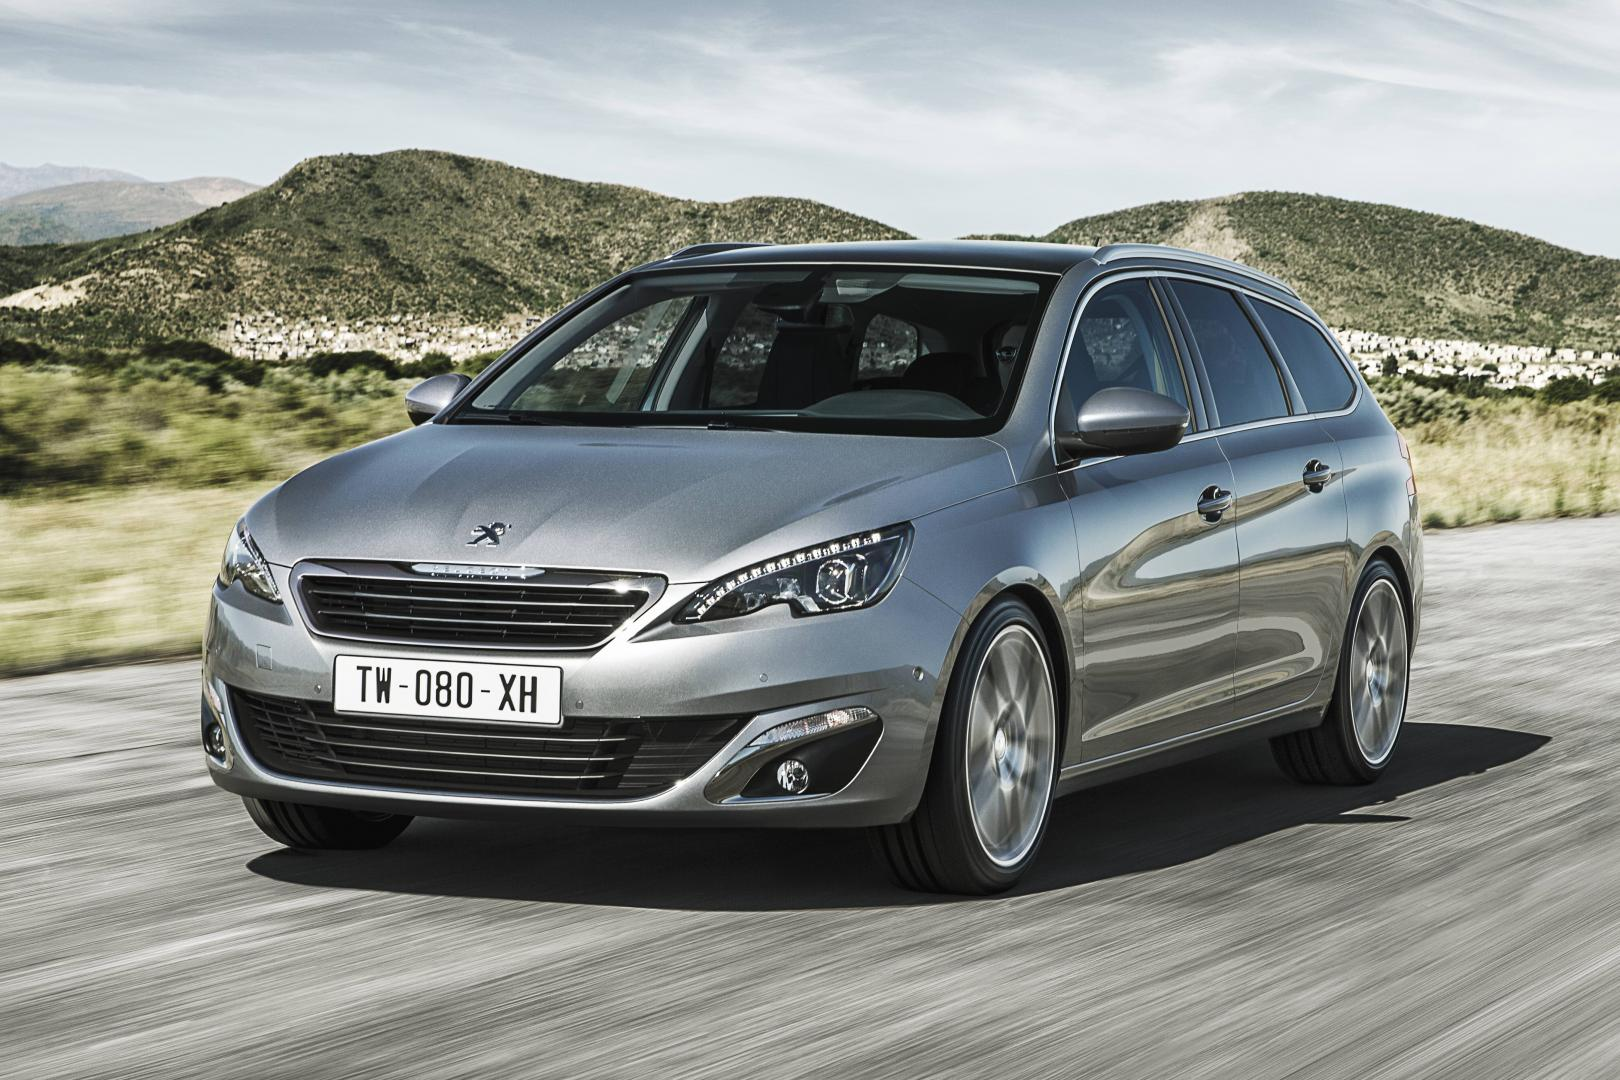 peugeot 308 sw e thp 2014 test en specificaties topgear. Black Bedroom Furniture Sets. Home Design Ideas